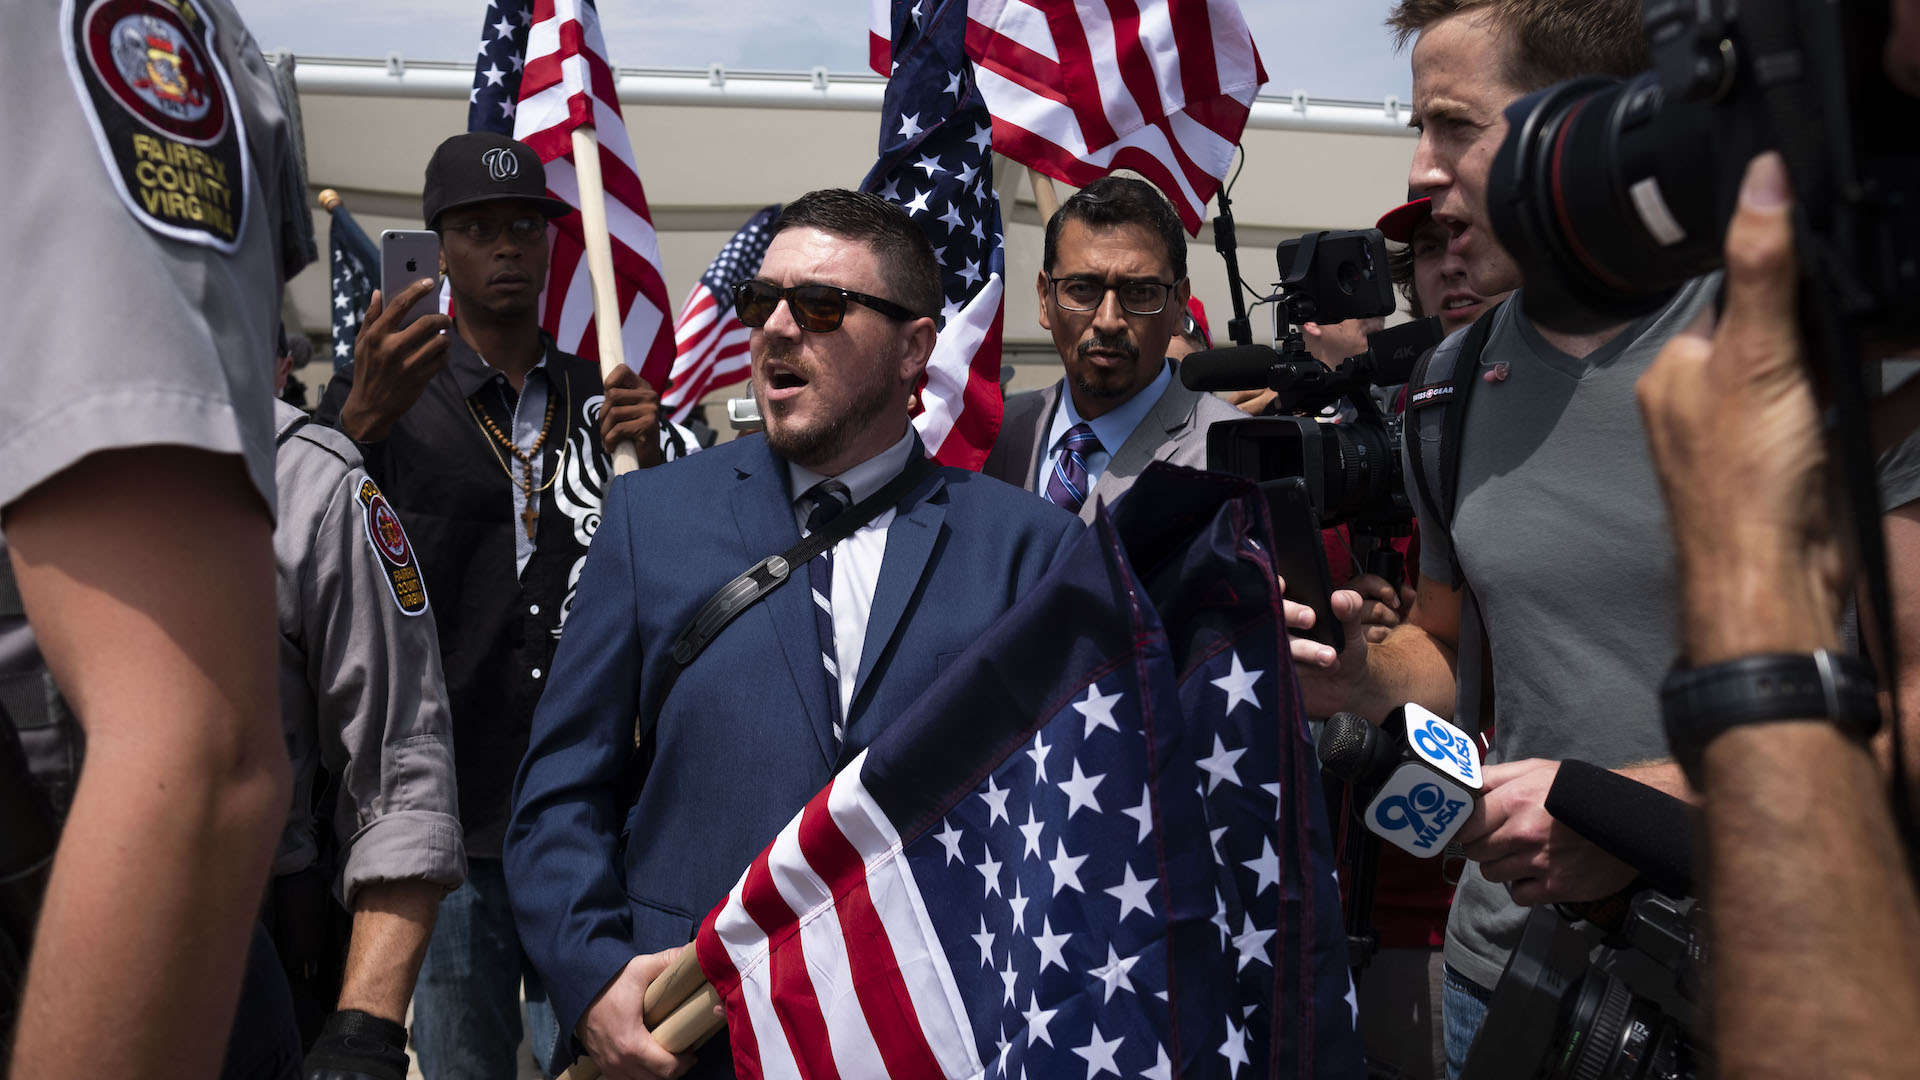 Jason Kessler's anti-Jewish screed was interrupted by his father: 'Hey, you get out of my room'